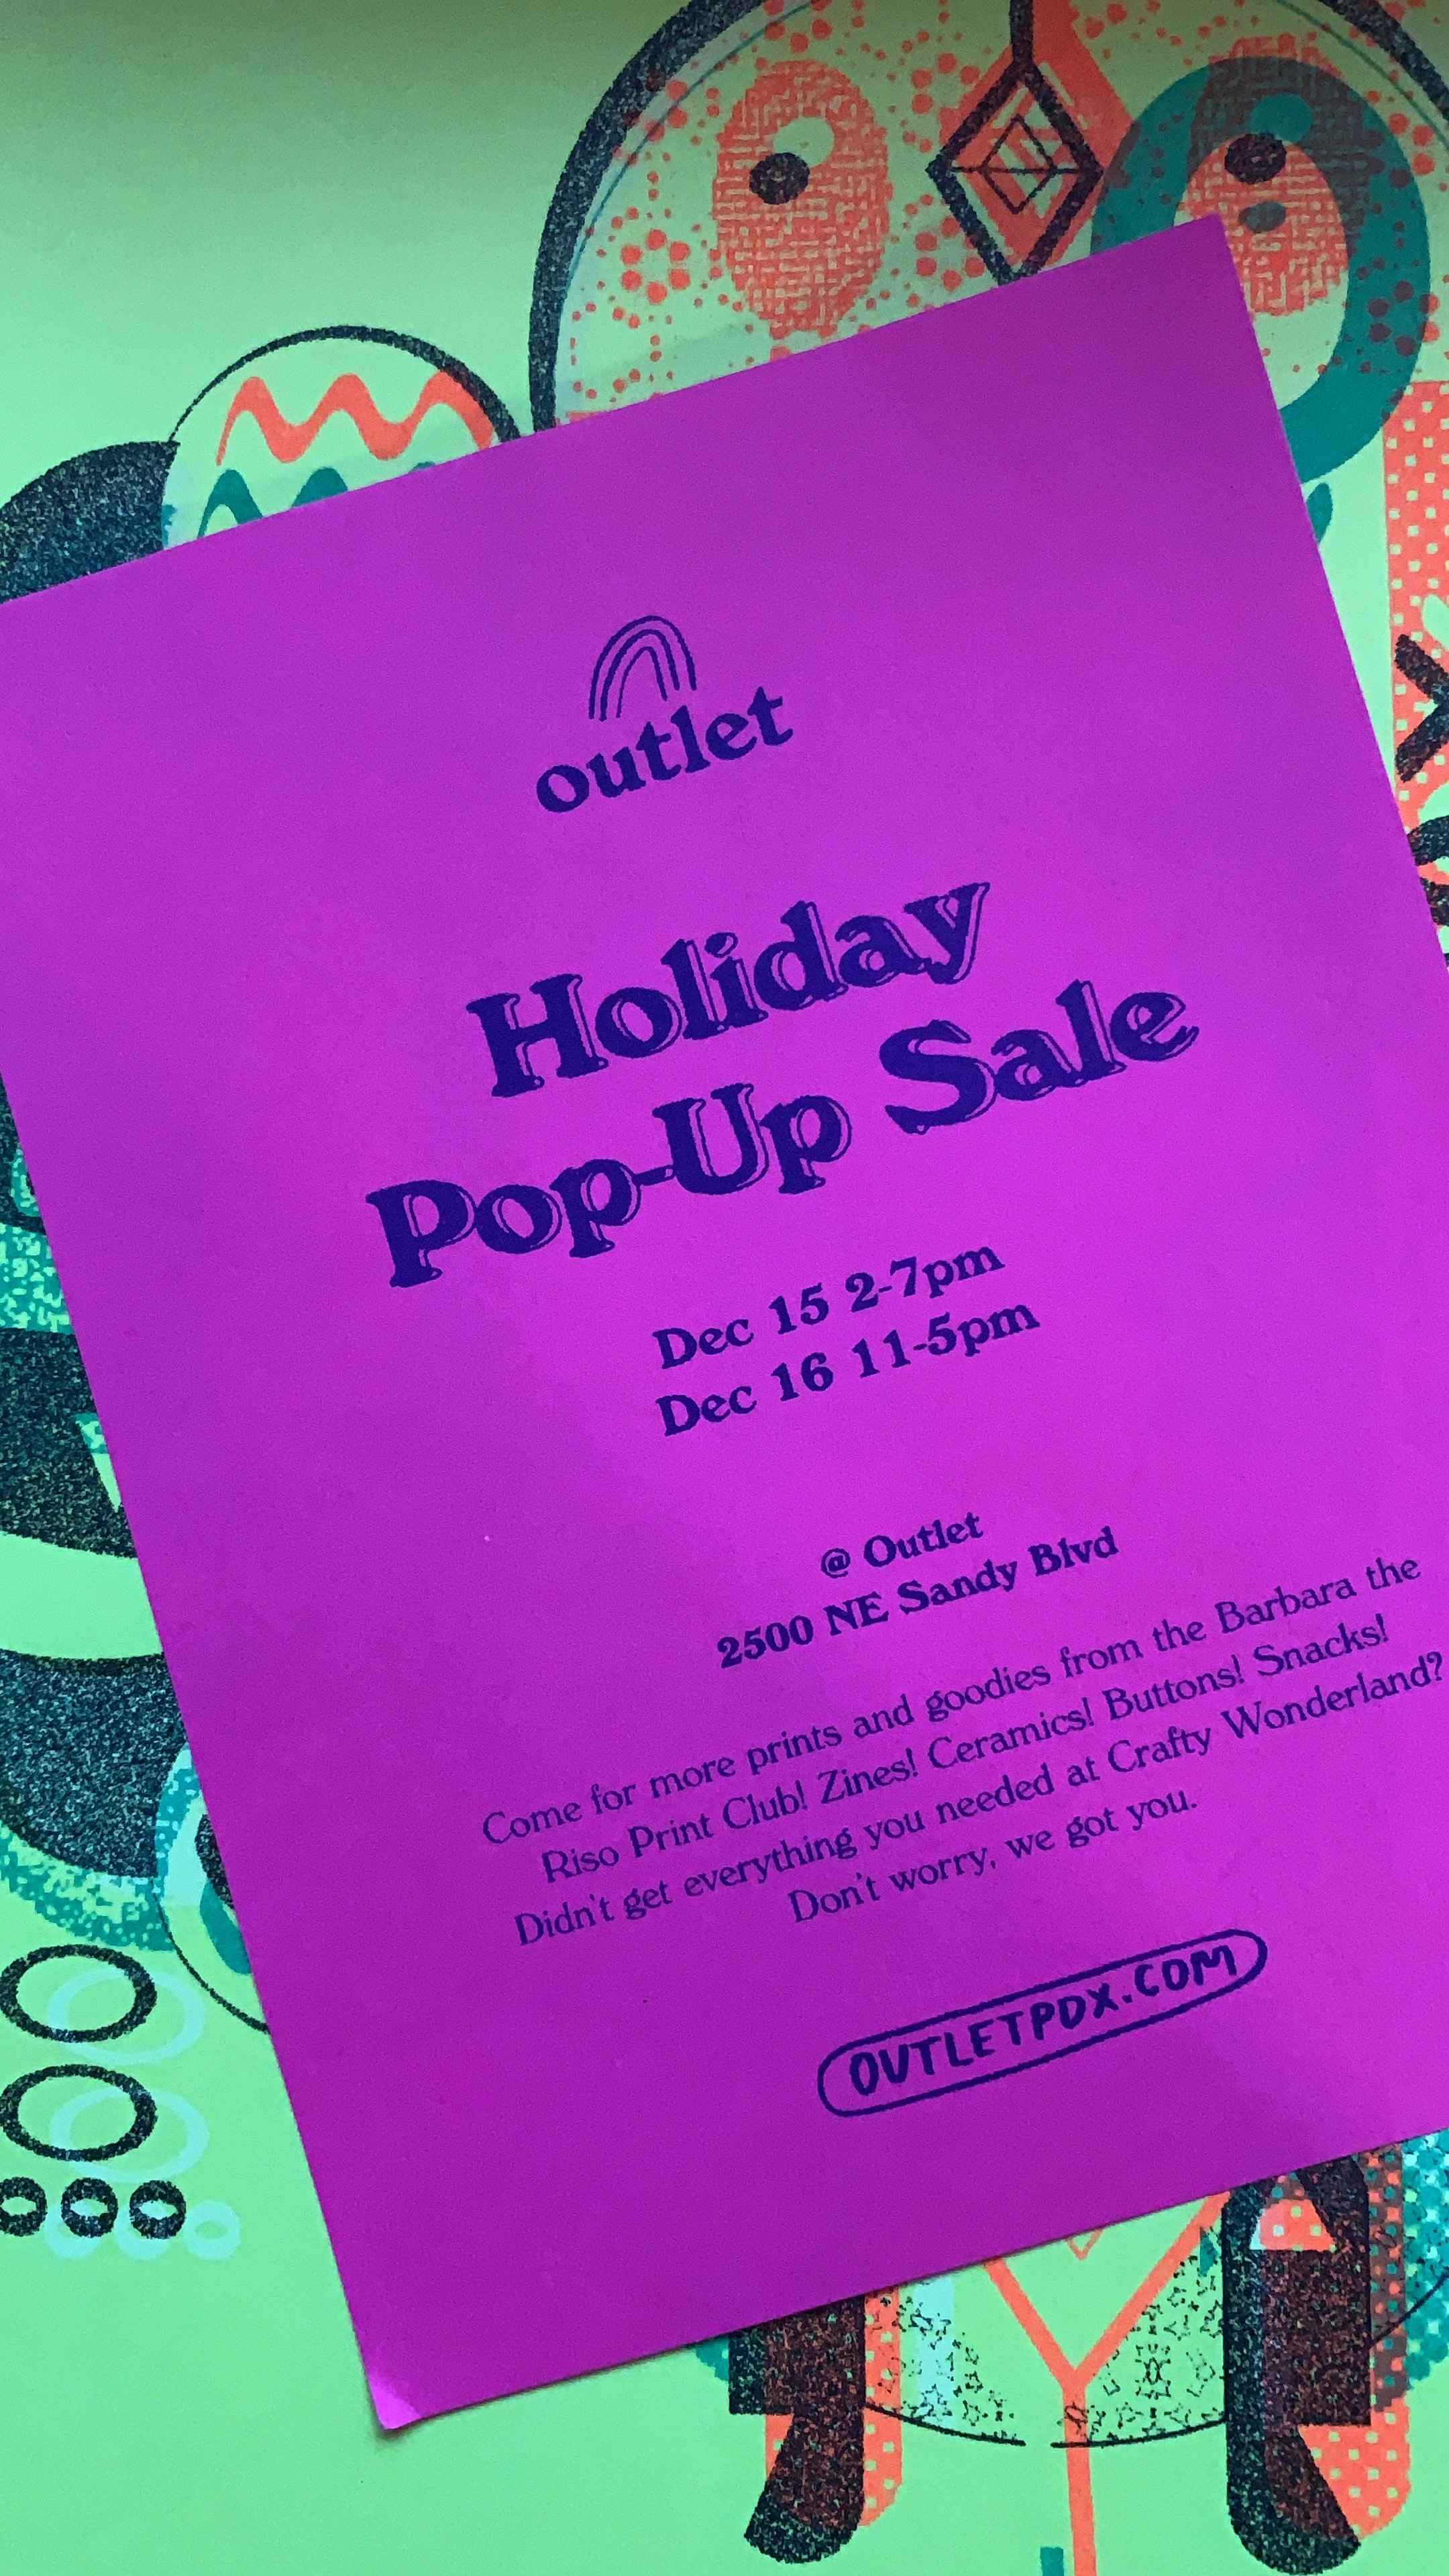 Outlet PDX Holiday Pop Sale Flyer